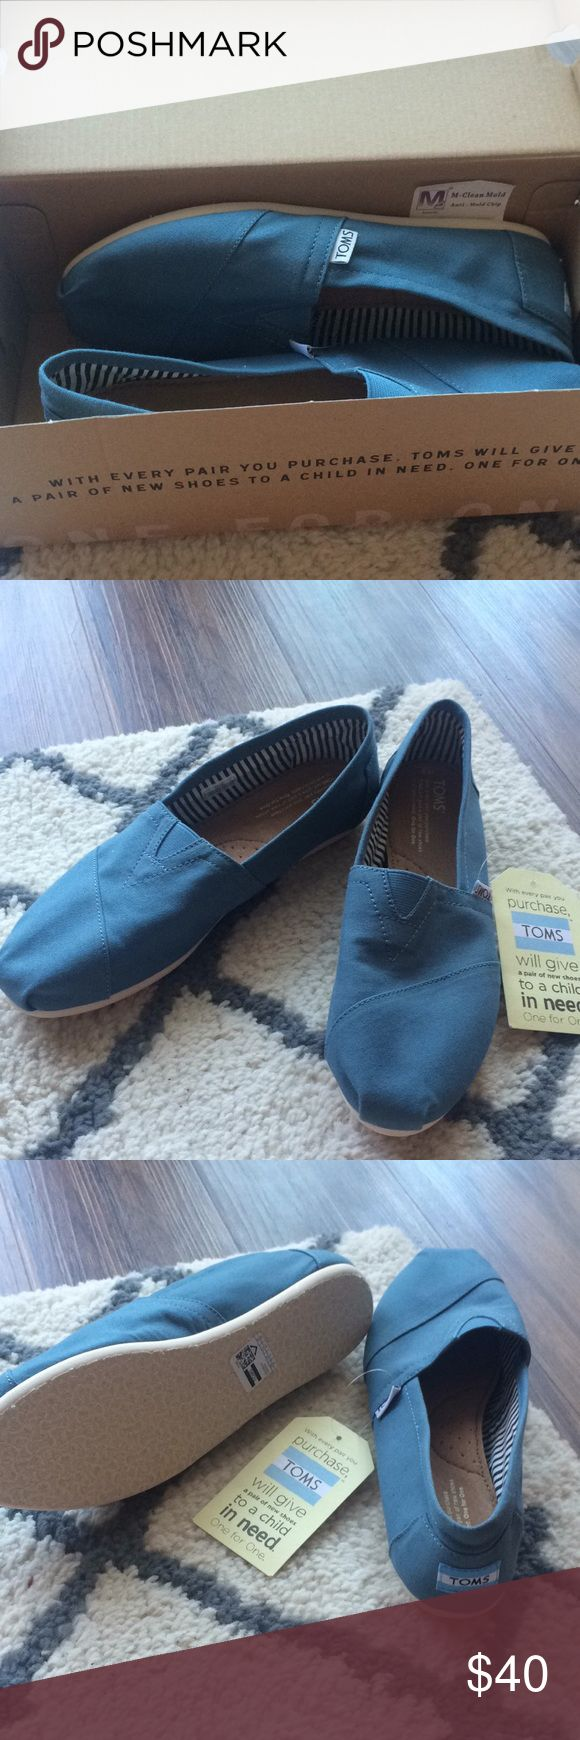 Brand new blue Toms women's size 9 Brand new! Received as a gift but not my color. Never worn! New with tags! TOMS Shoes